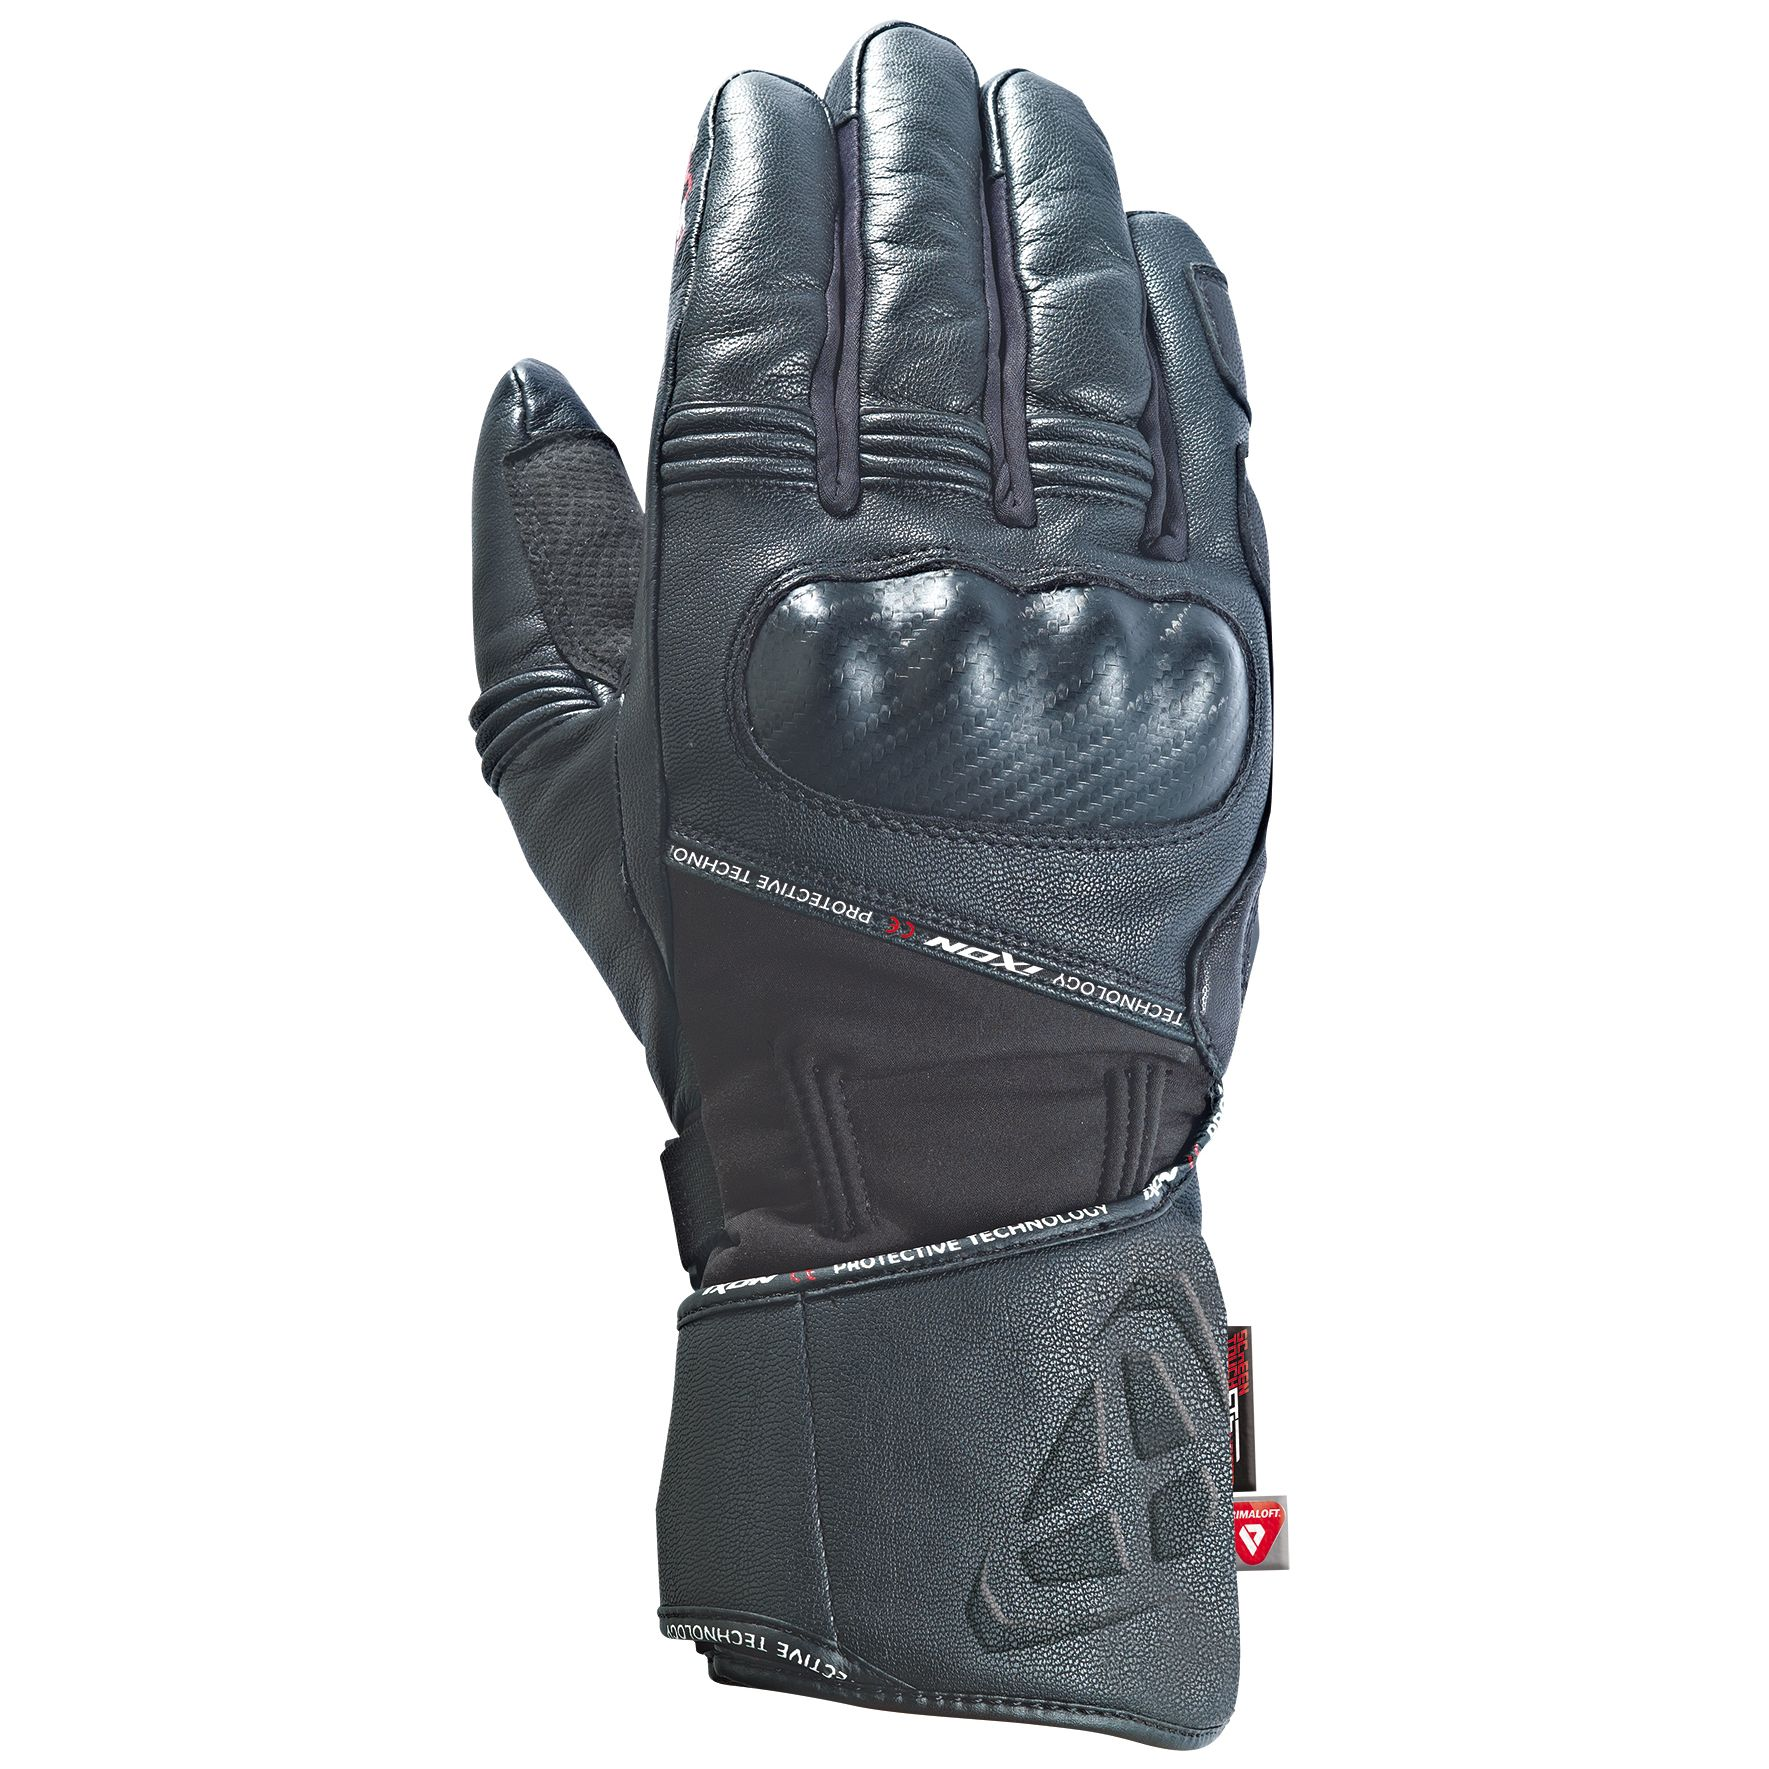 High Top Textil Guantes, Color Gris, Talla 36